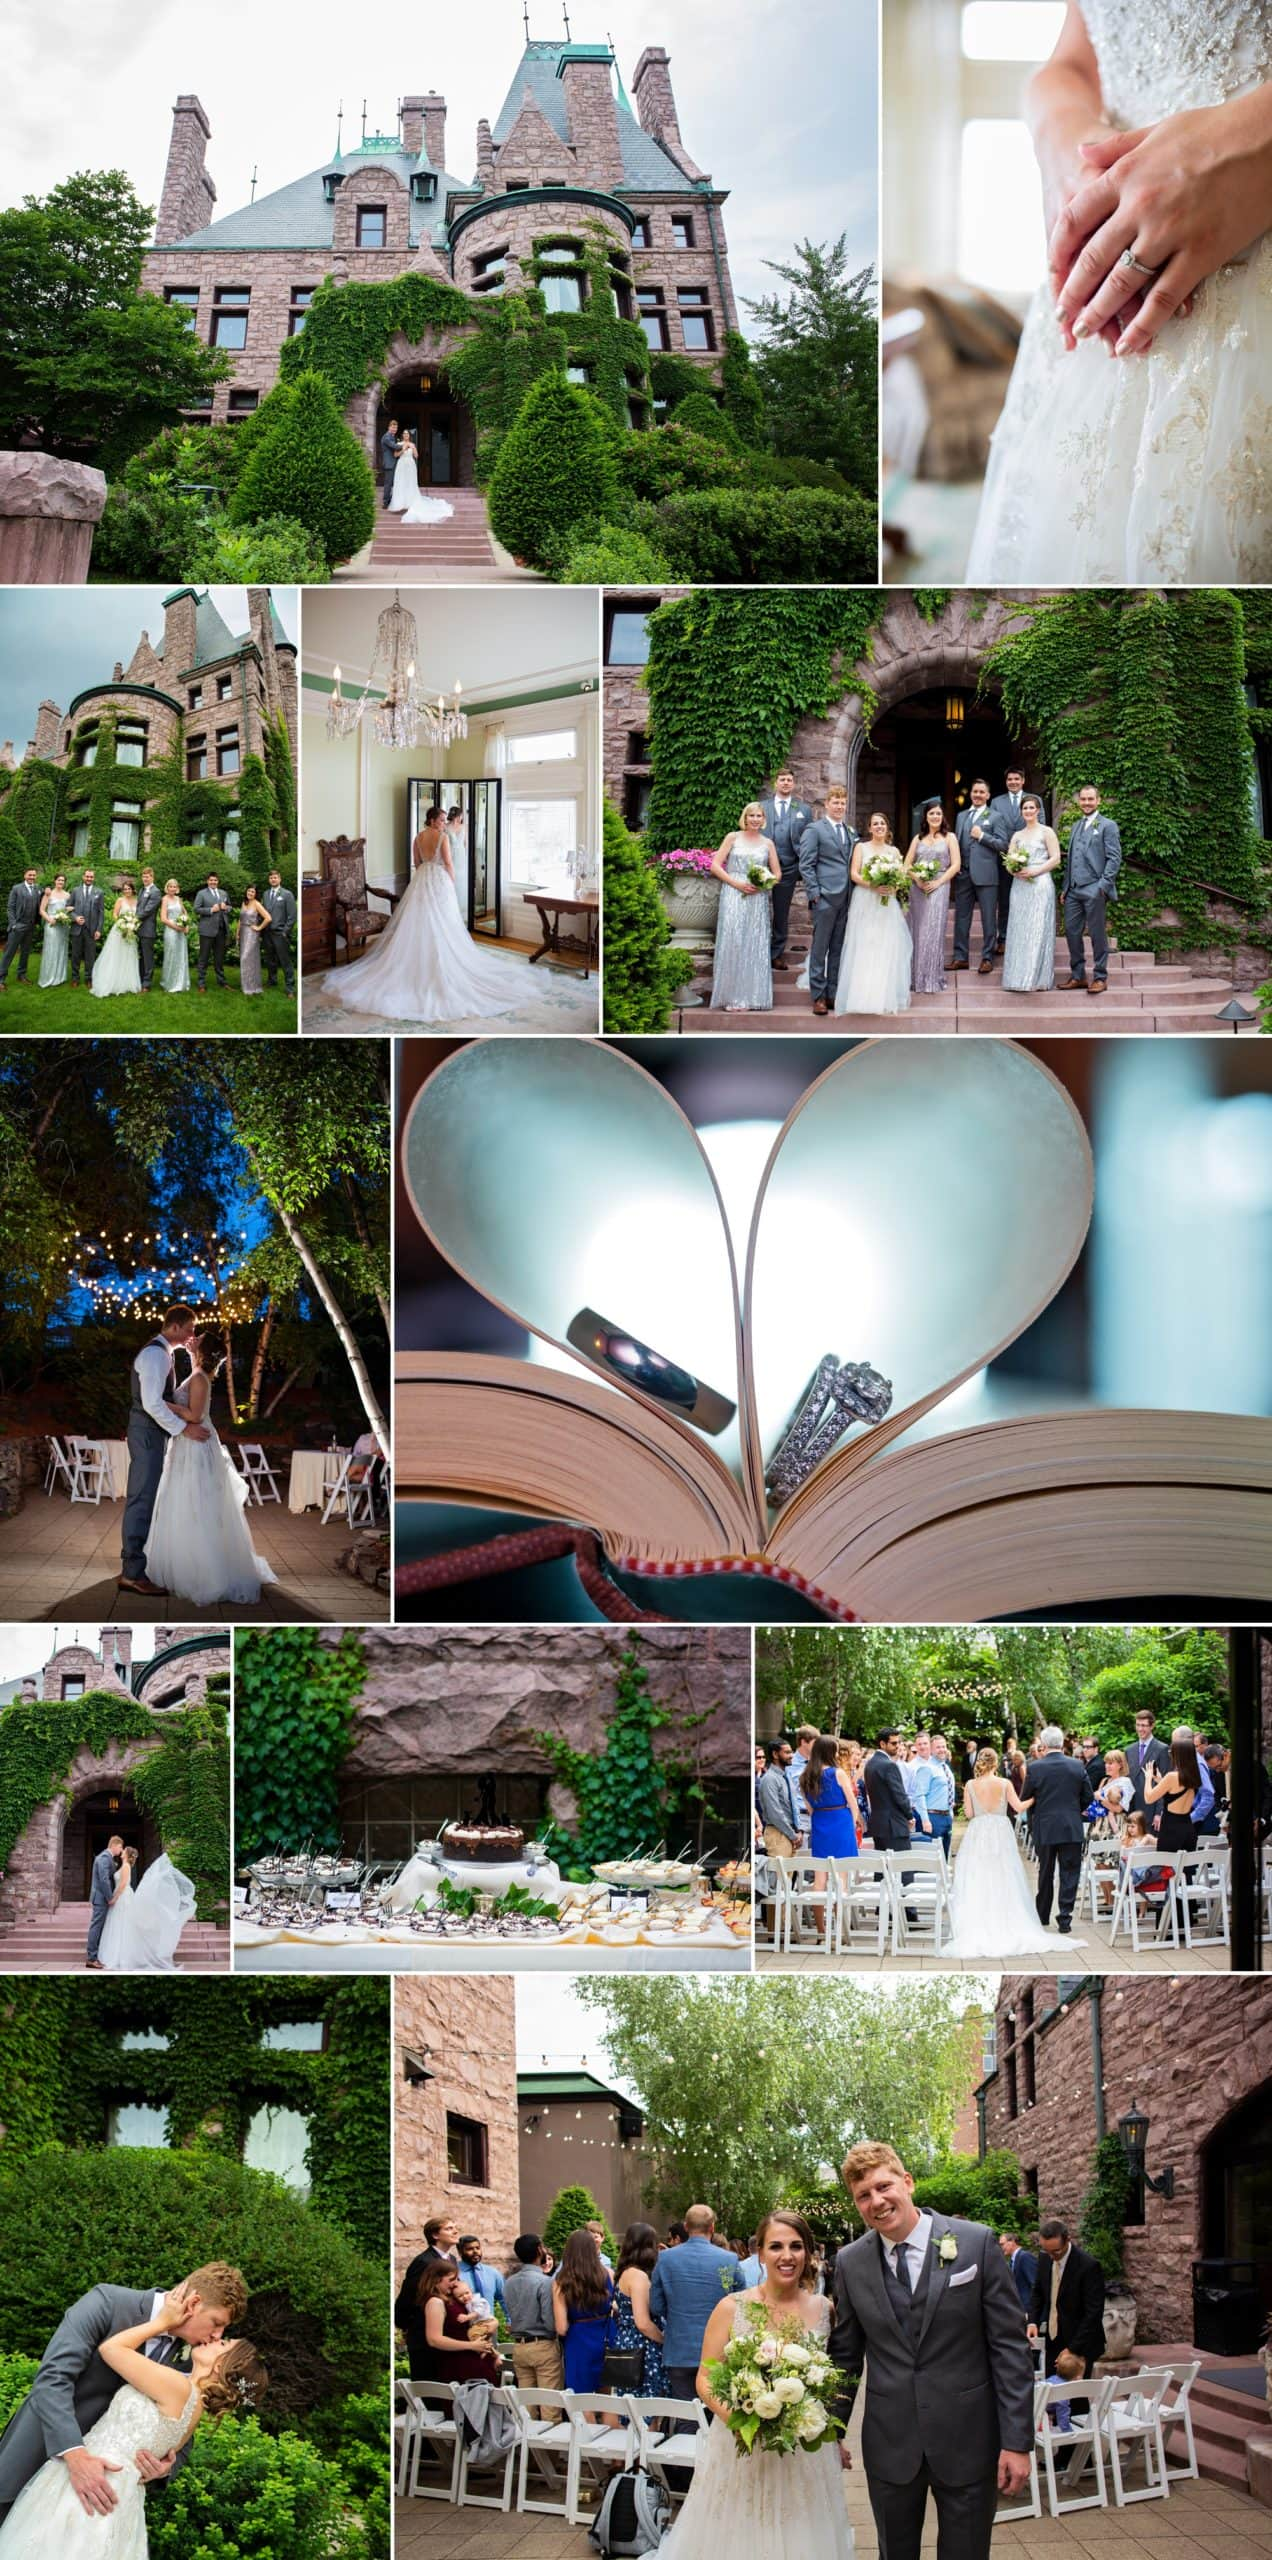 Photo collages of work by photographers Allison Million and Rachel Lahlum at Minneapolis wedding.